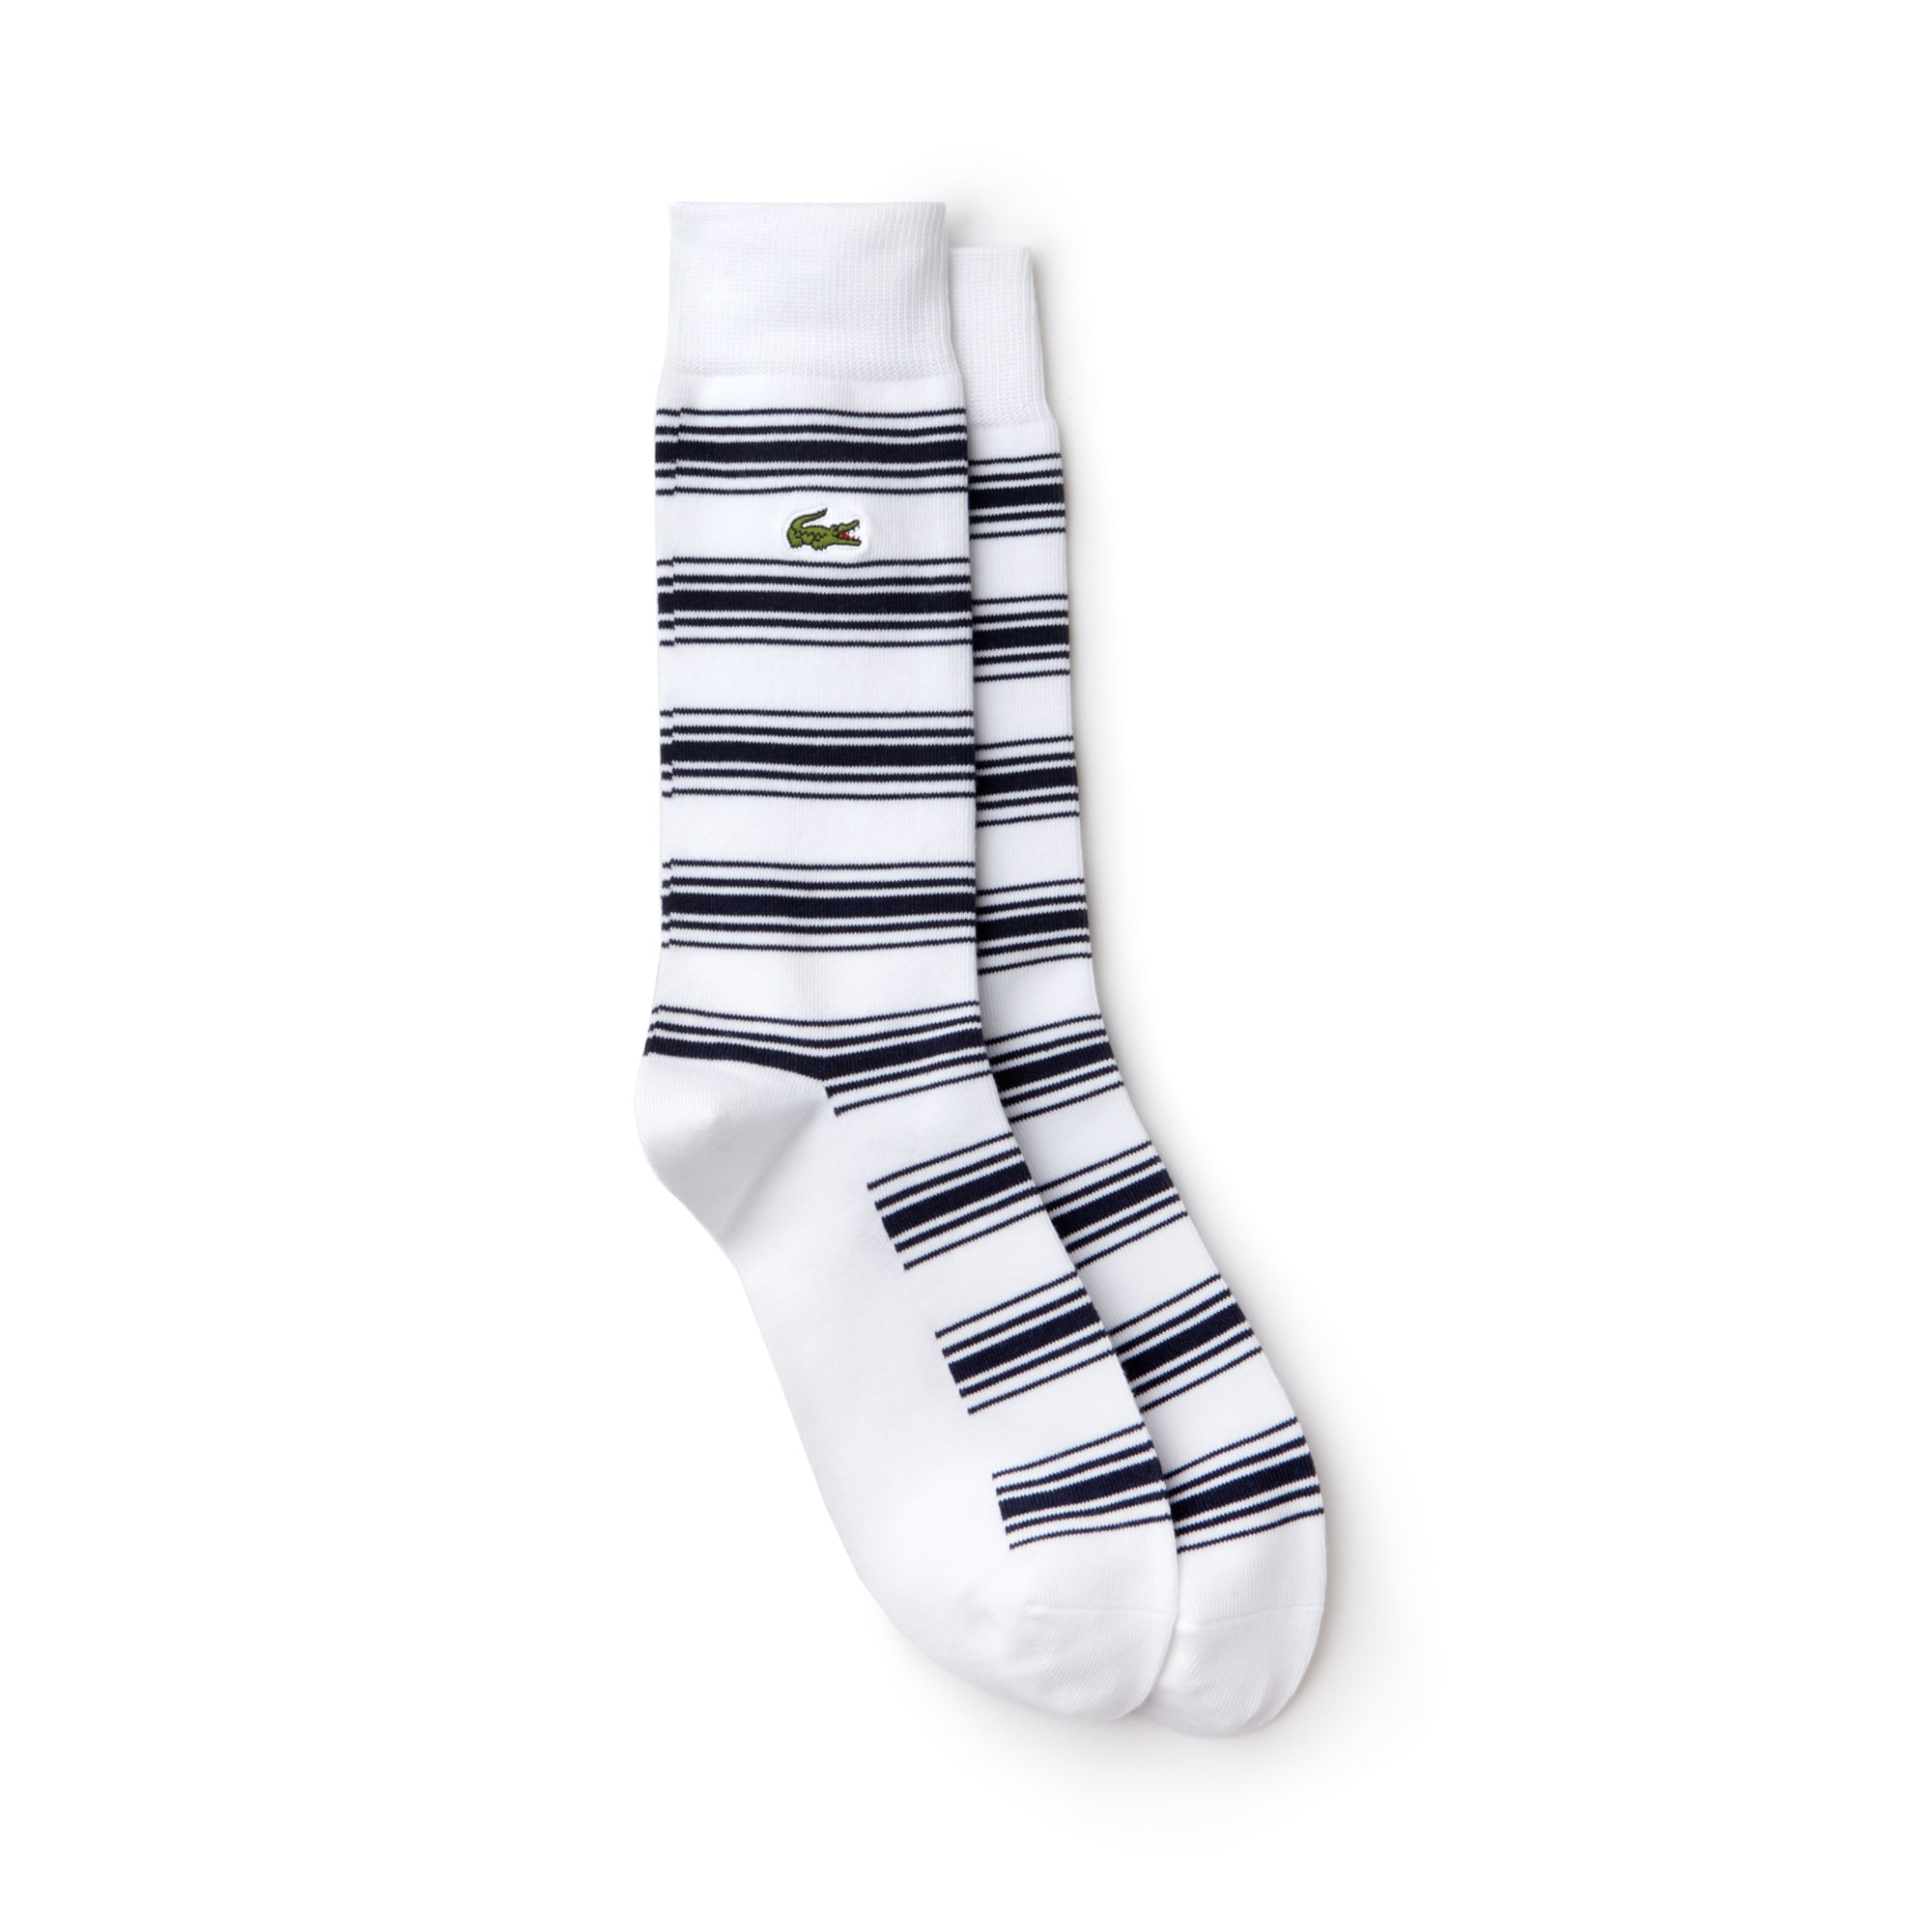 Men's Striped Stretch Cotton Jersey Socks